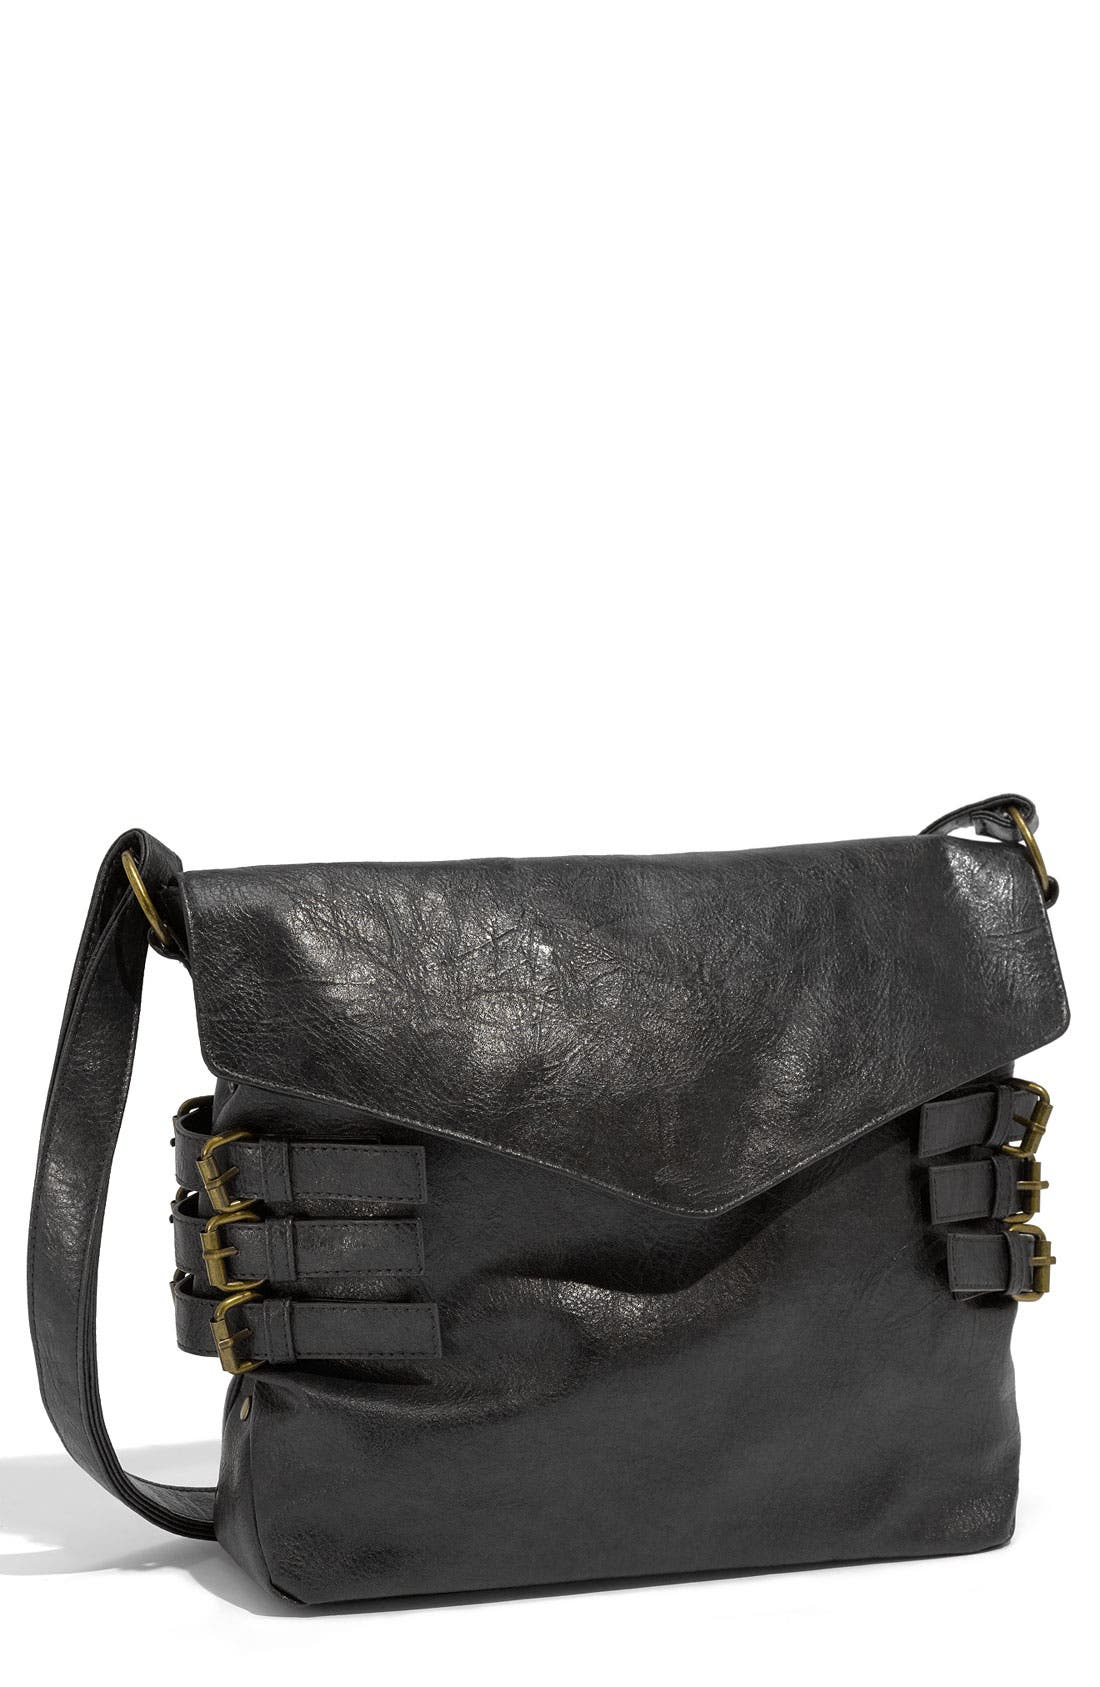 Main Image - Lulu Buckled Envelope Bag